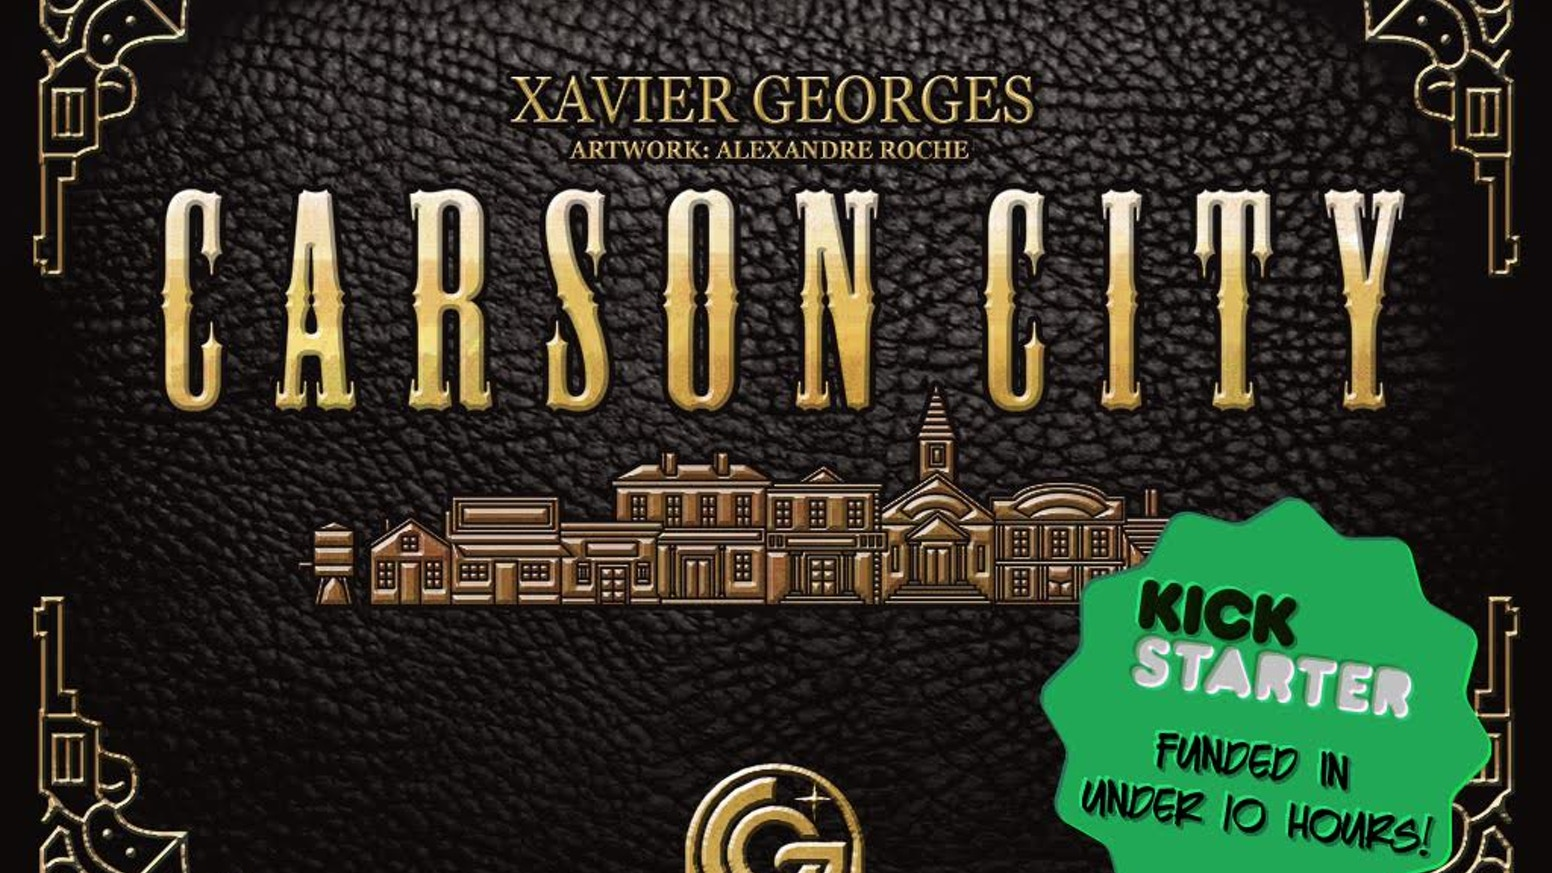 The Carson City Big Box edition is a complete collection of everything that Carson City ever offered, all expansions are included.